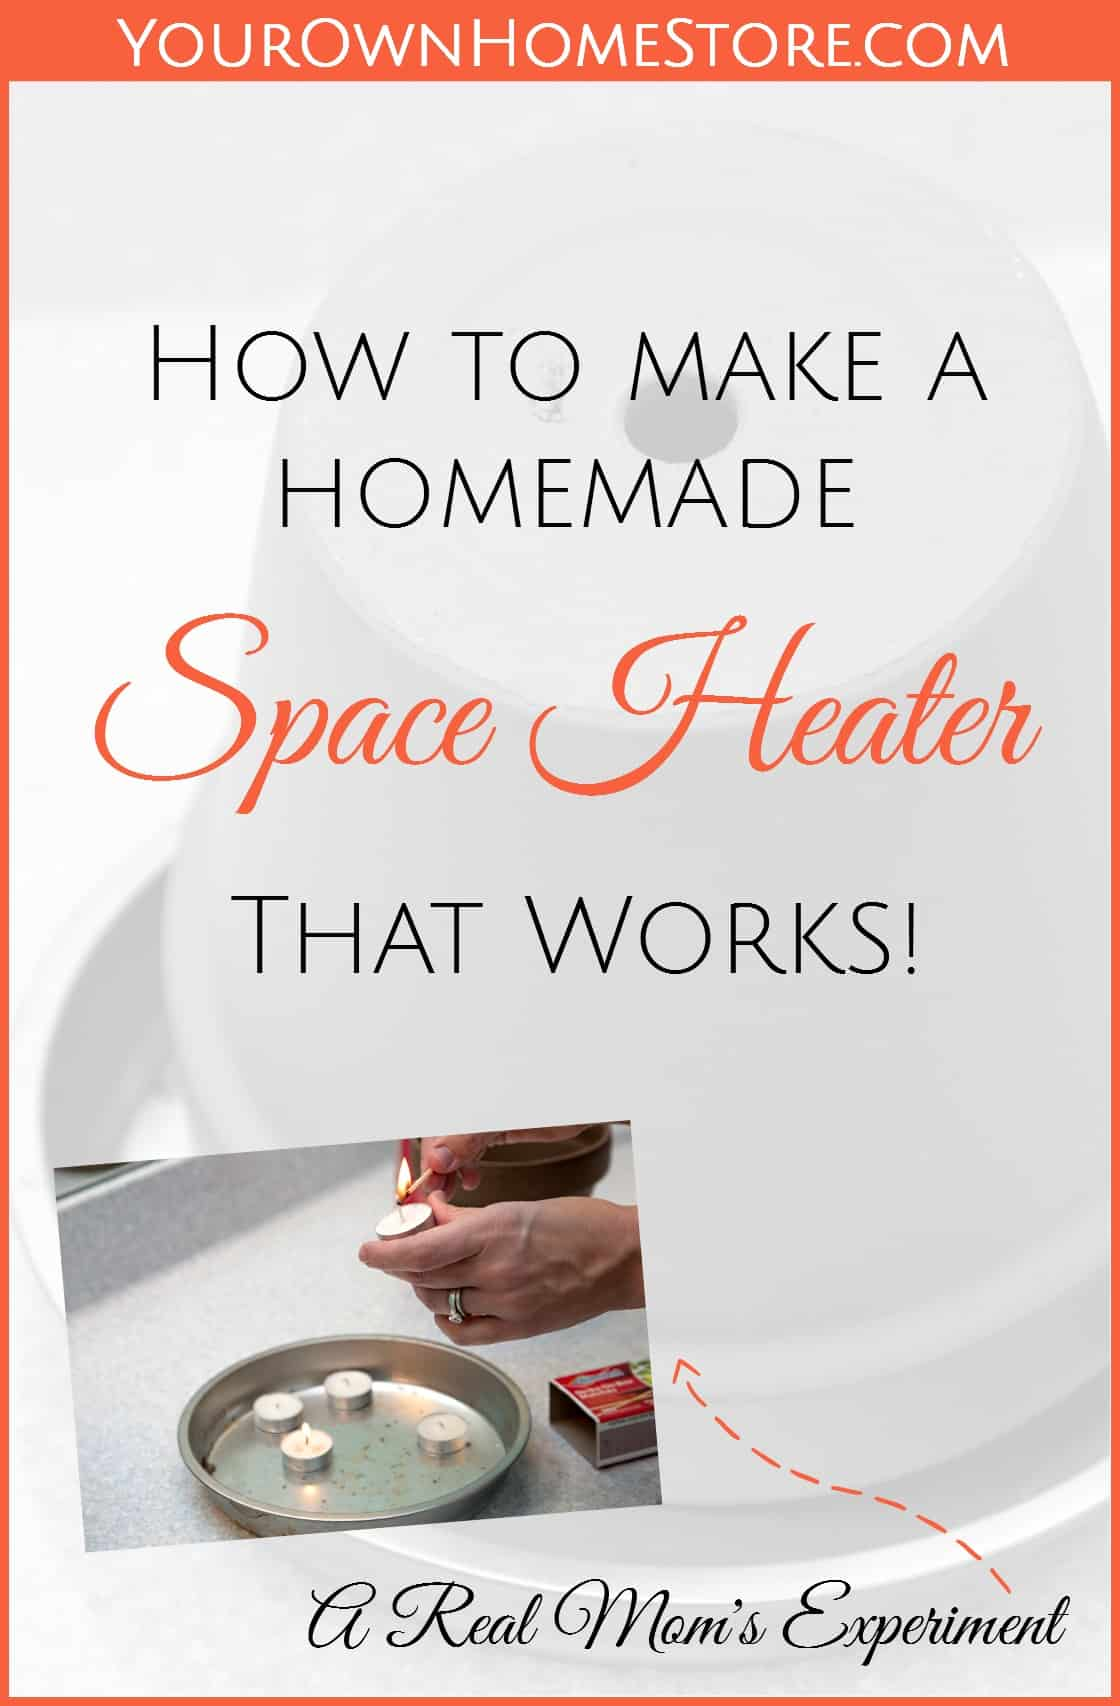 A Homemade Space Heater That Works!